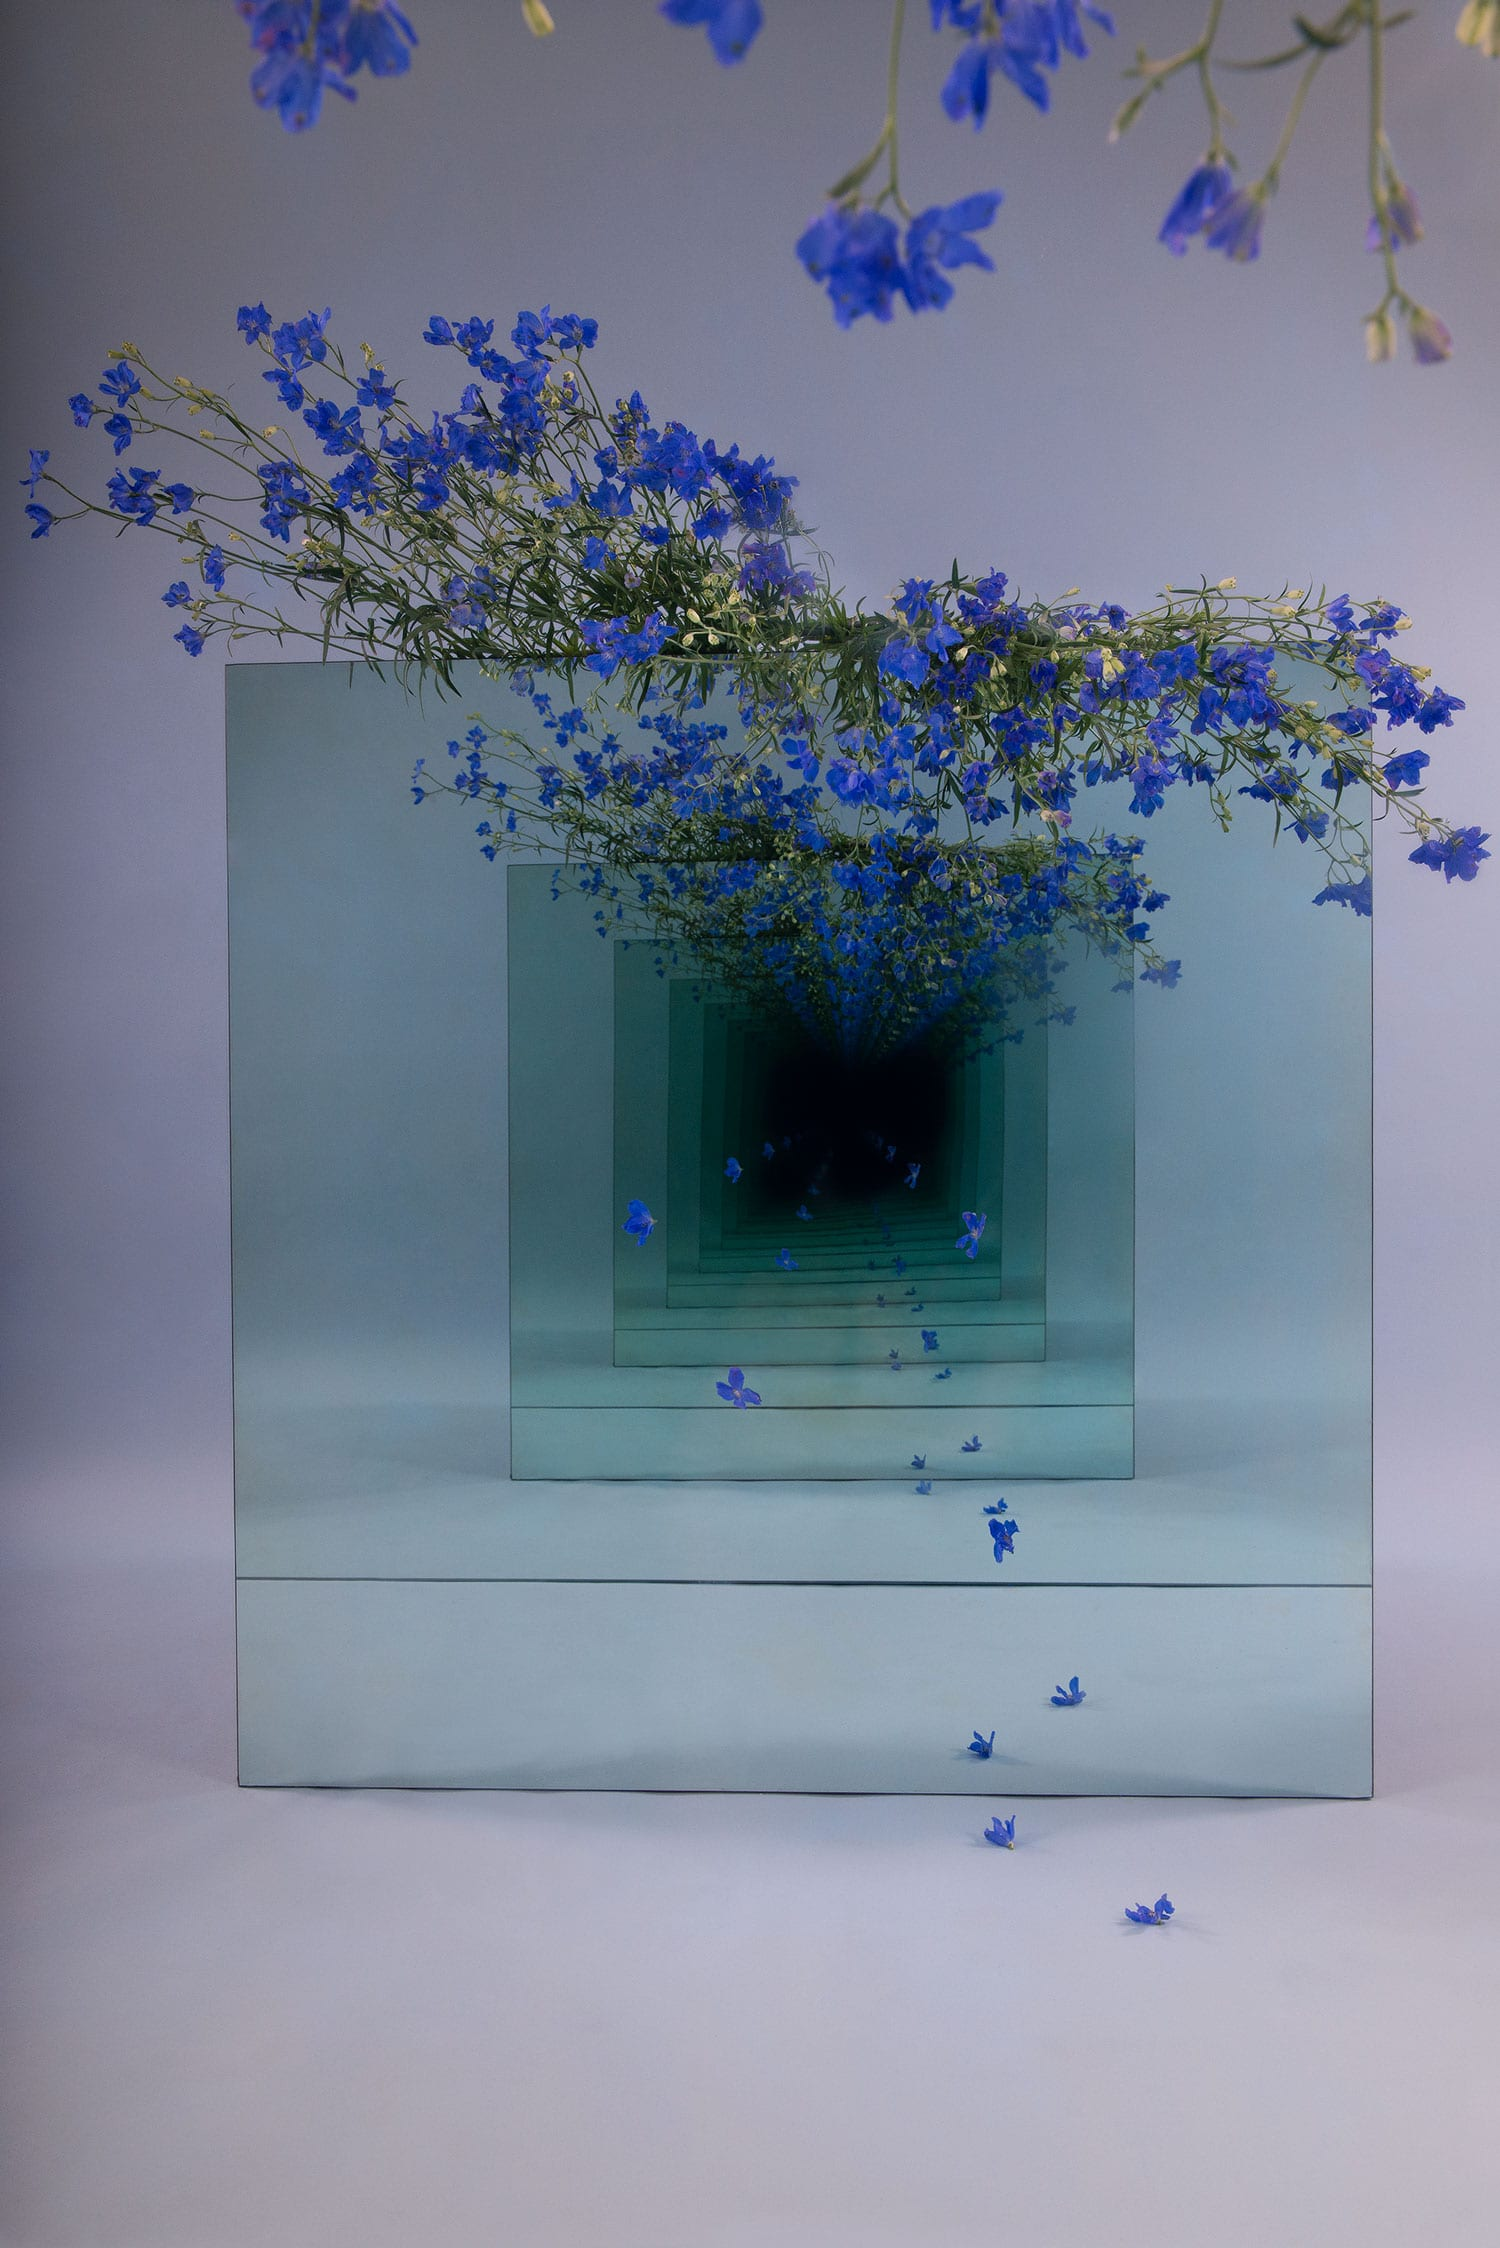 Infinite Mirrored Tunnel Installations by Sarah Meyohas | Yellowtrace